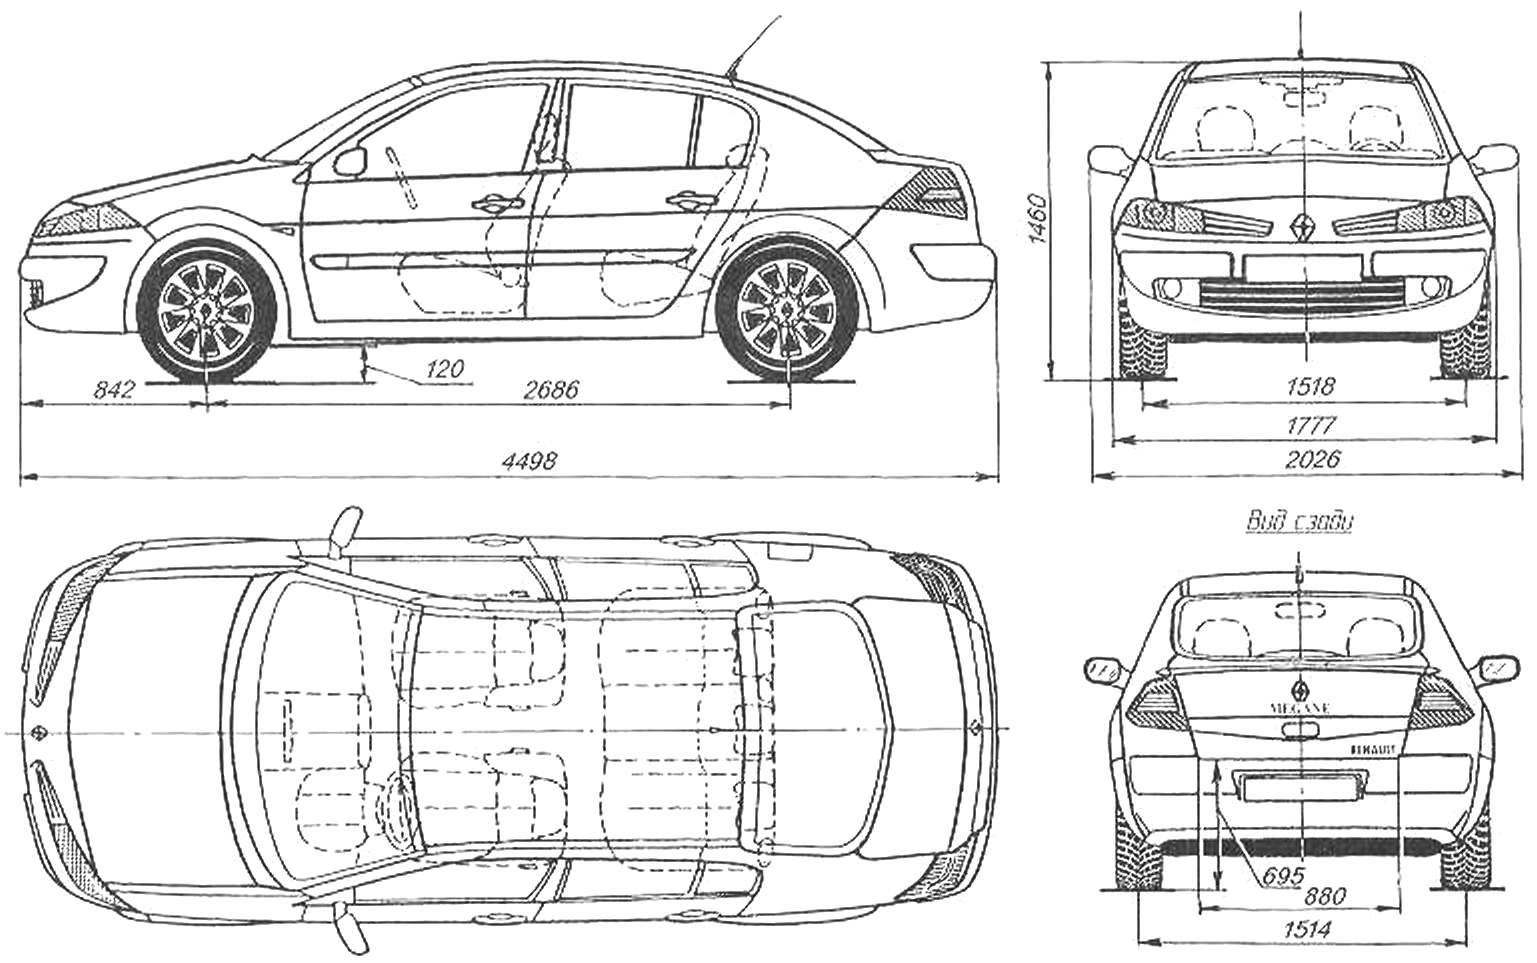 [DIAGRAM] Wiring Diagram Renault Megane 2006 FULL Version